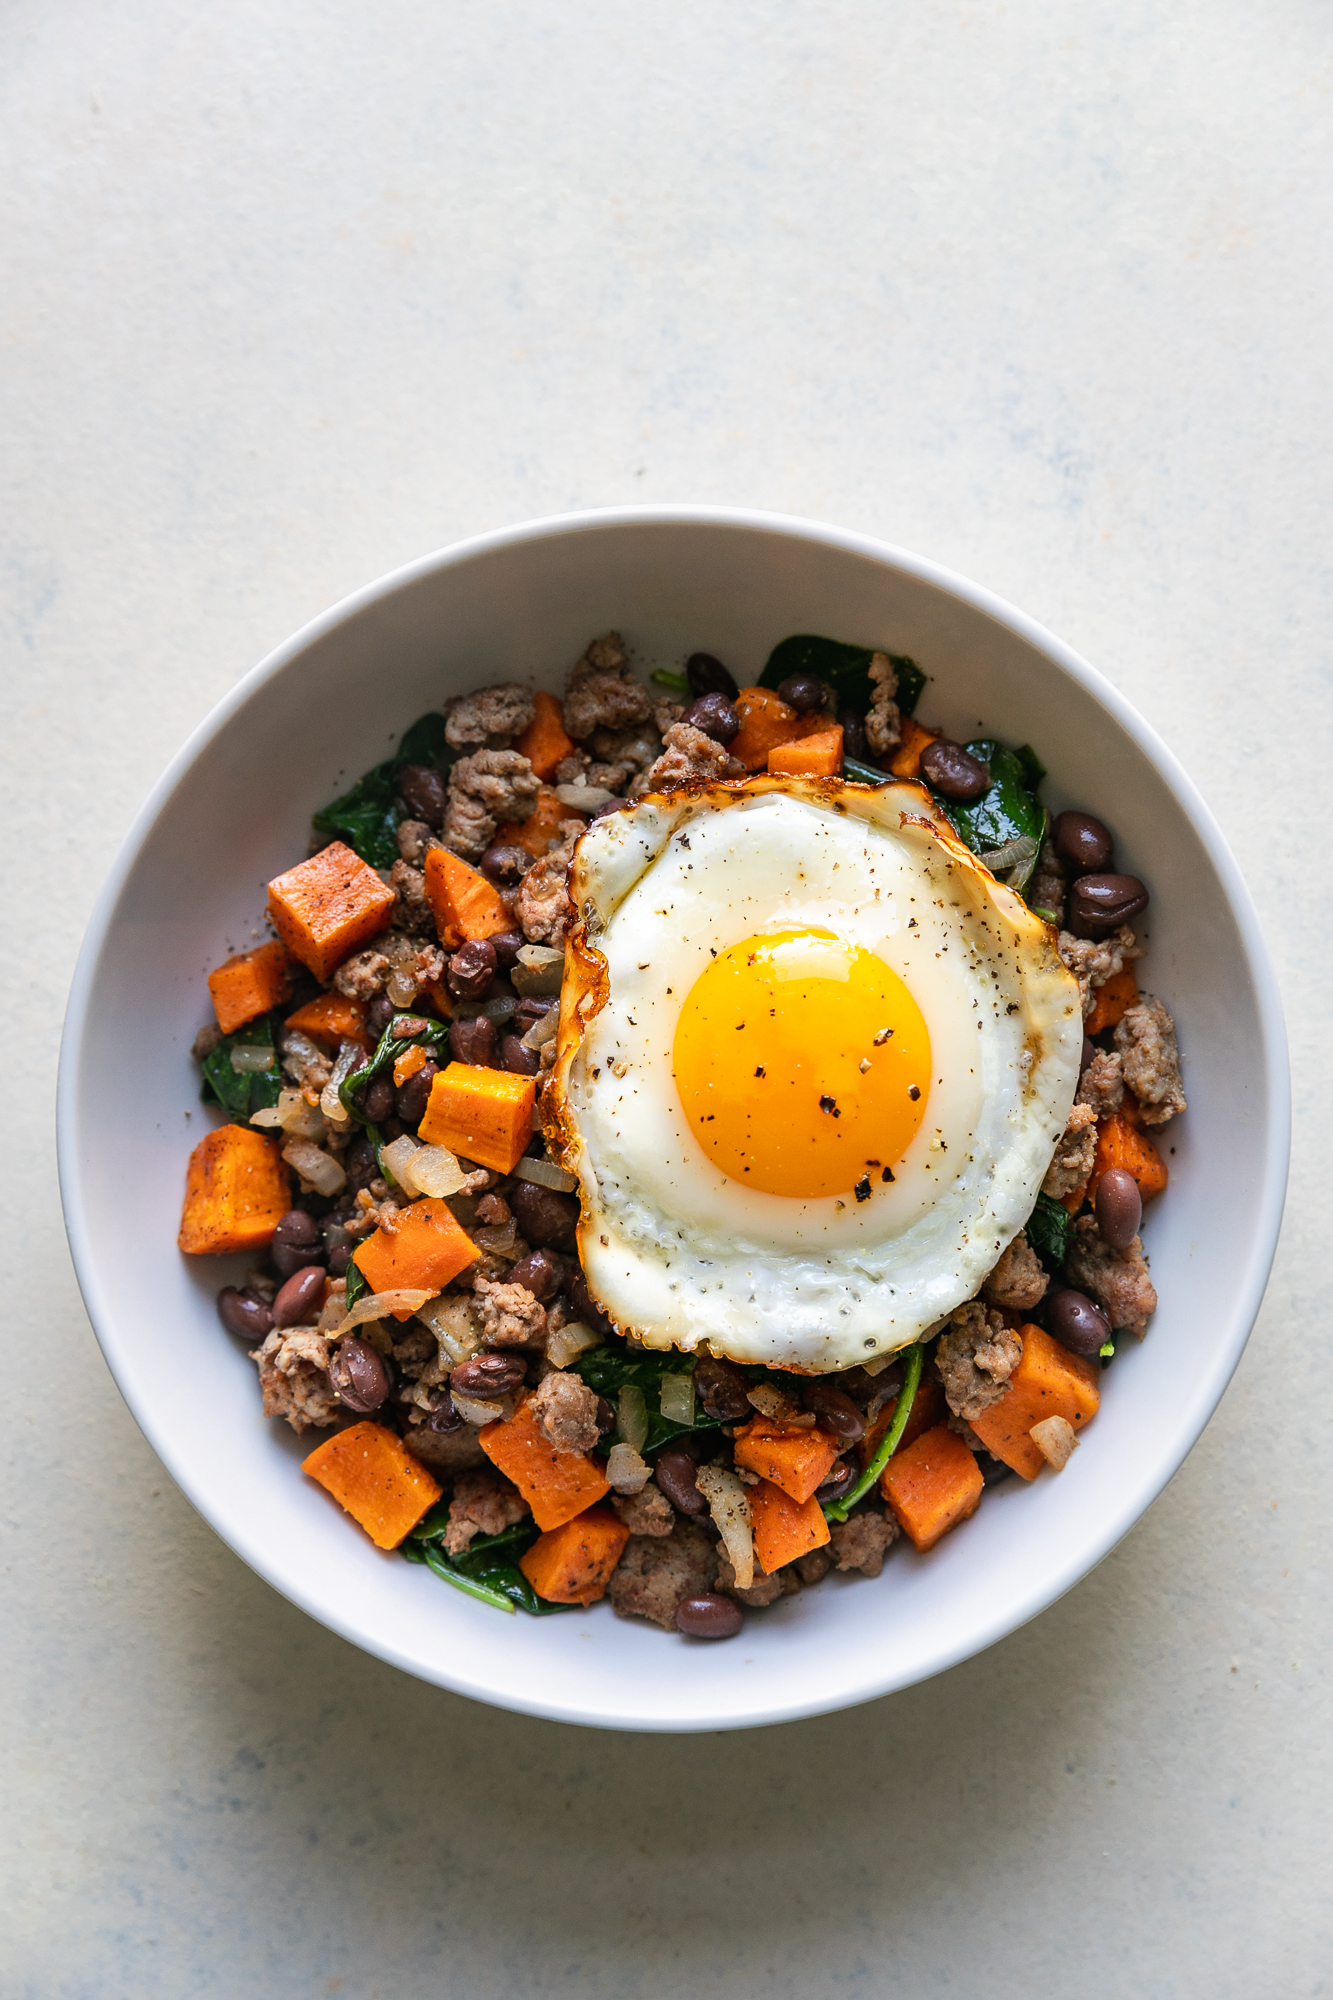 Chor iz Good   Organic Sweet Potatoes, Organic Black Soy Beans, Pastured Pork Chorizo, Cage Free Eggs, Organic Rainbow Chard, Onions, Apple Cider Vinegar, Olive Oil   Moroccan Magic Seasoning   Meal $8.95 | Snack $4.95